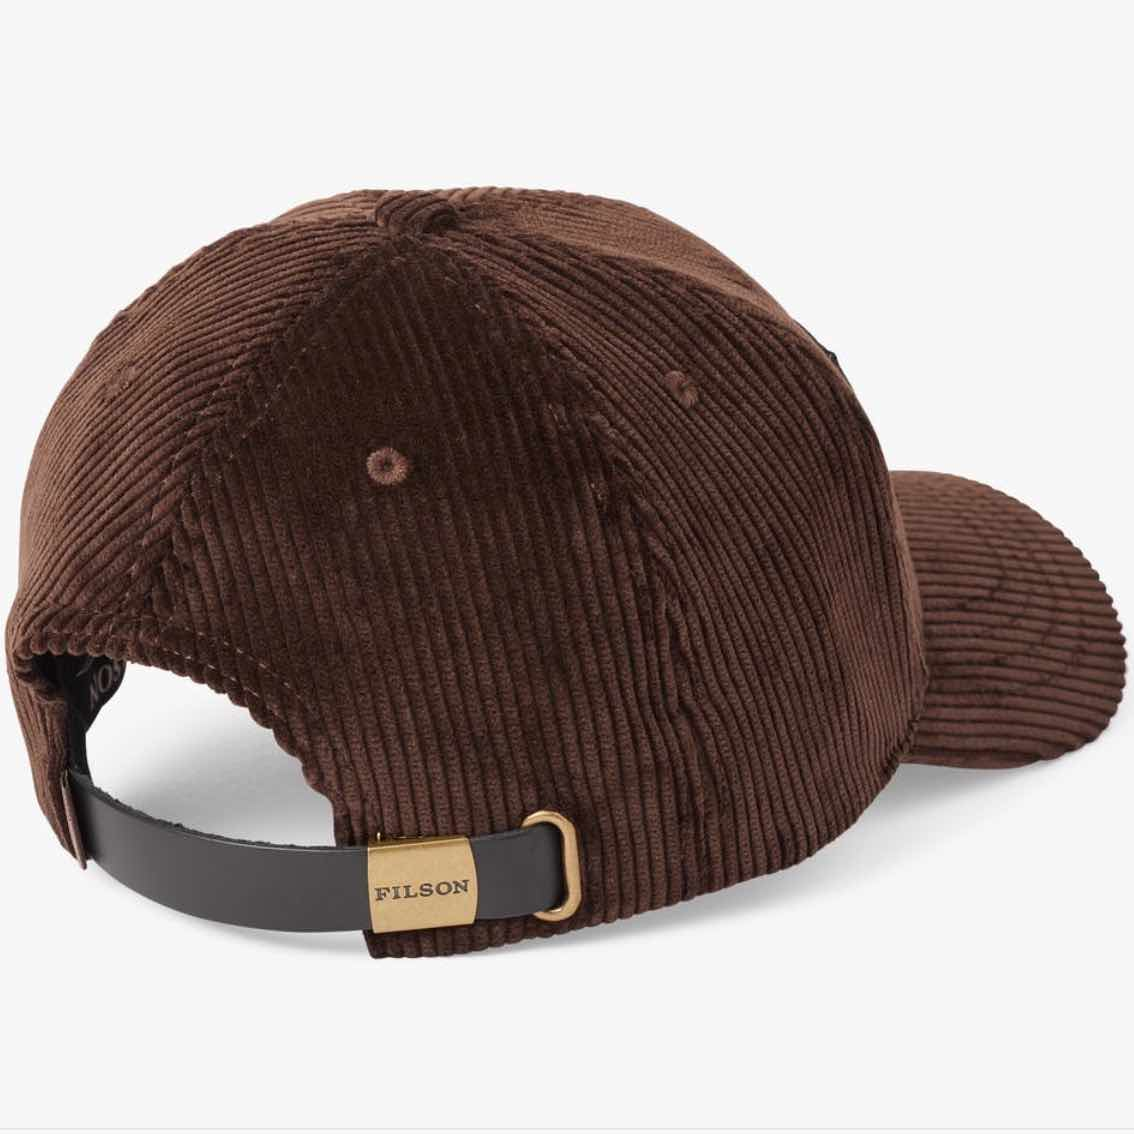 FILSON LOGGER CAP - DARK BROWN